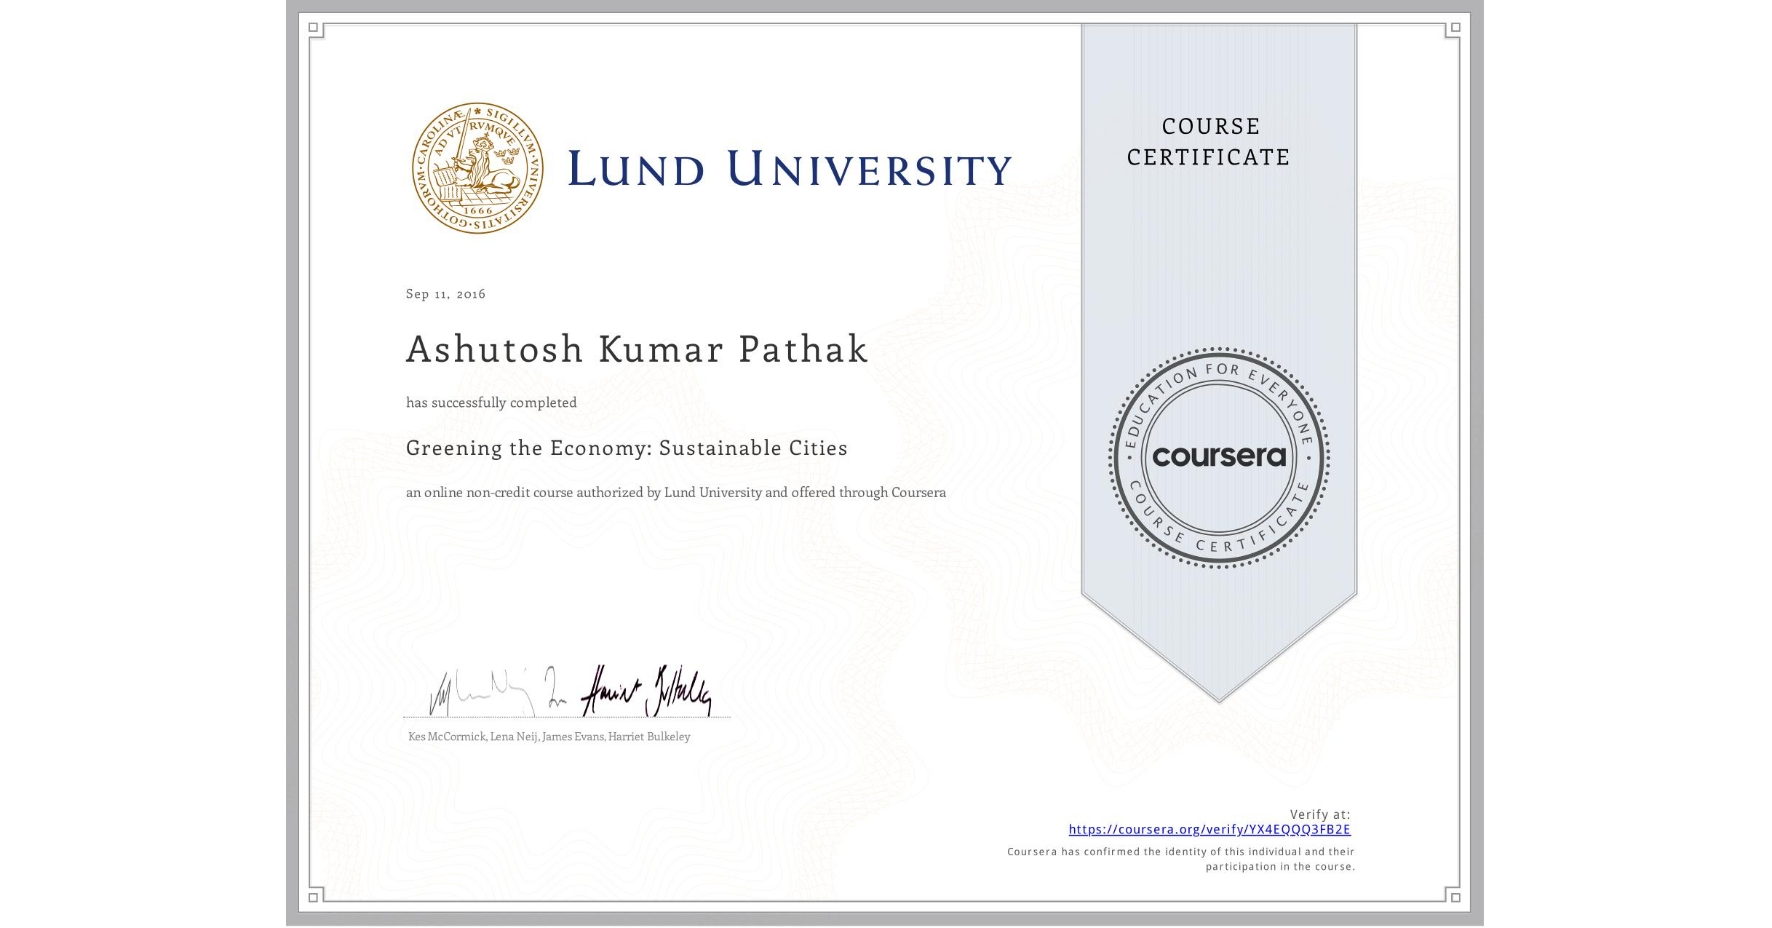 View certificate for Ashutosh Kumar Pathak, Greening the Economy: Sustainable Cities, an online non-credit course authorized by Lund University and offered through Coursera